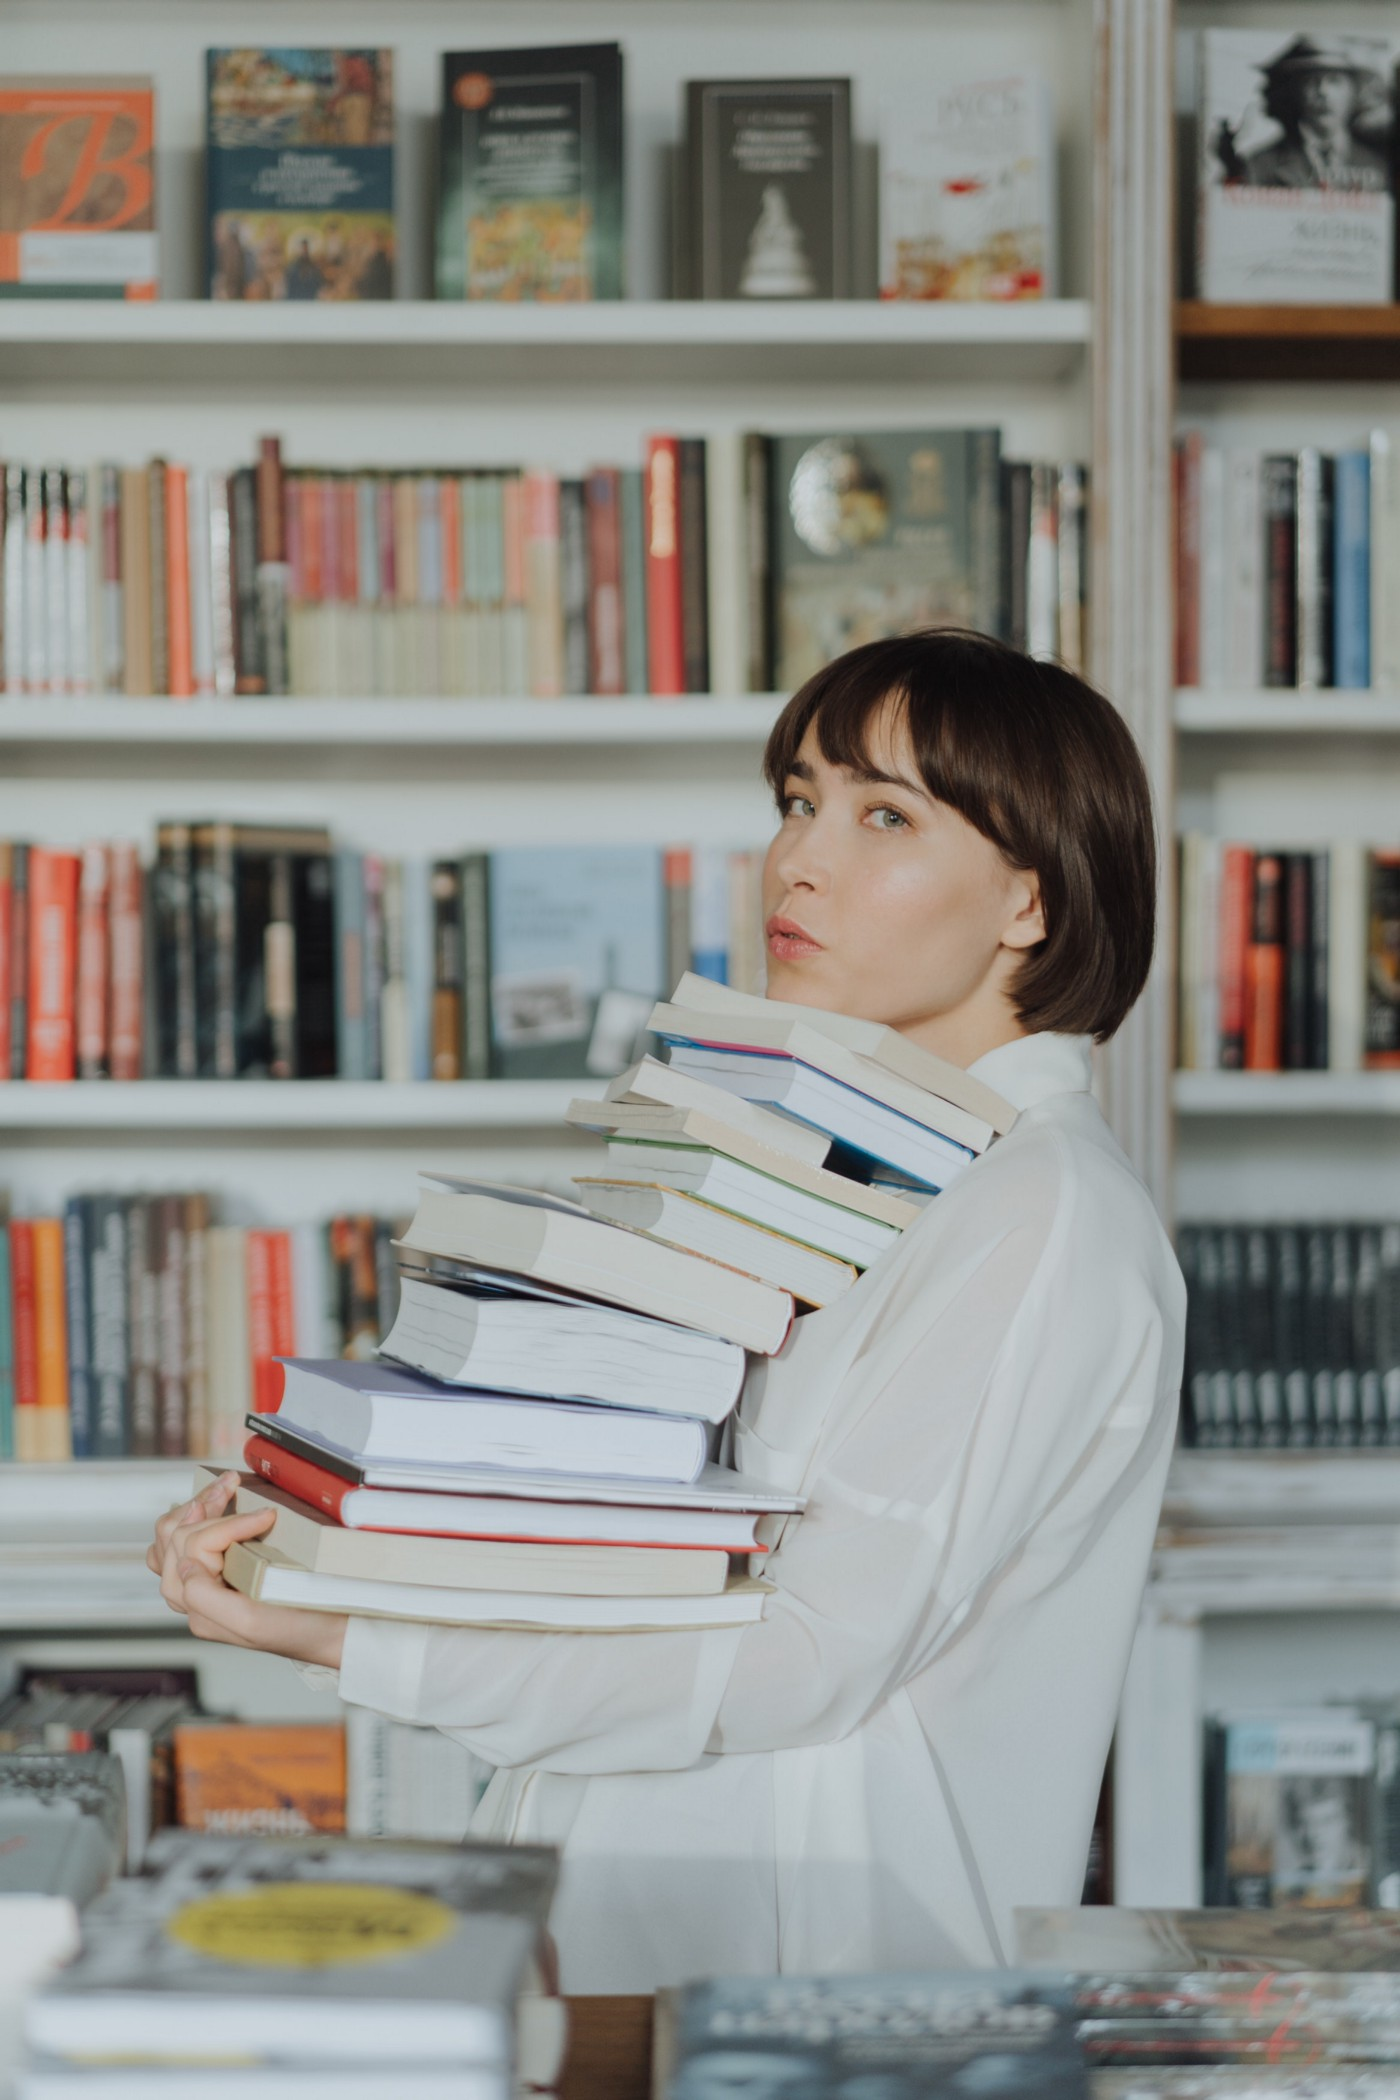 Light-skinned woman wearing white blouse with brown bob carrying a pile of 10+ books in a library or book shop.